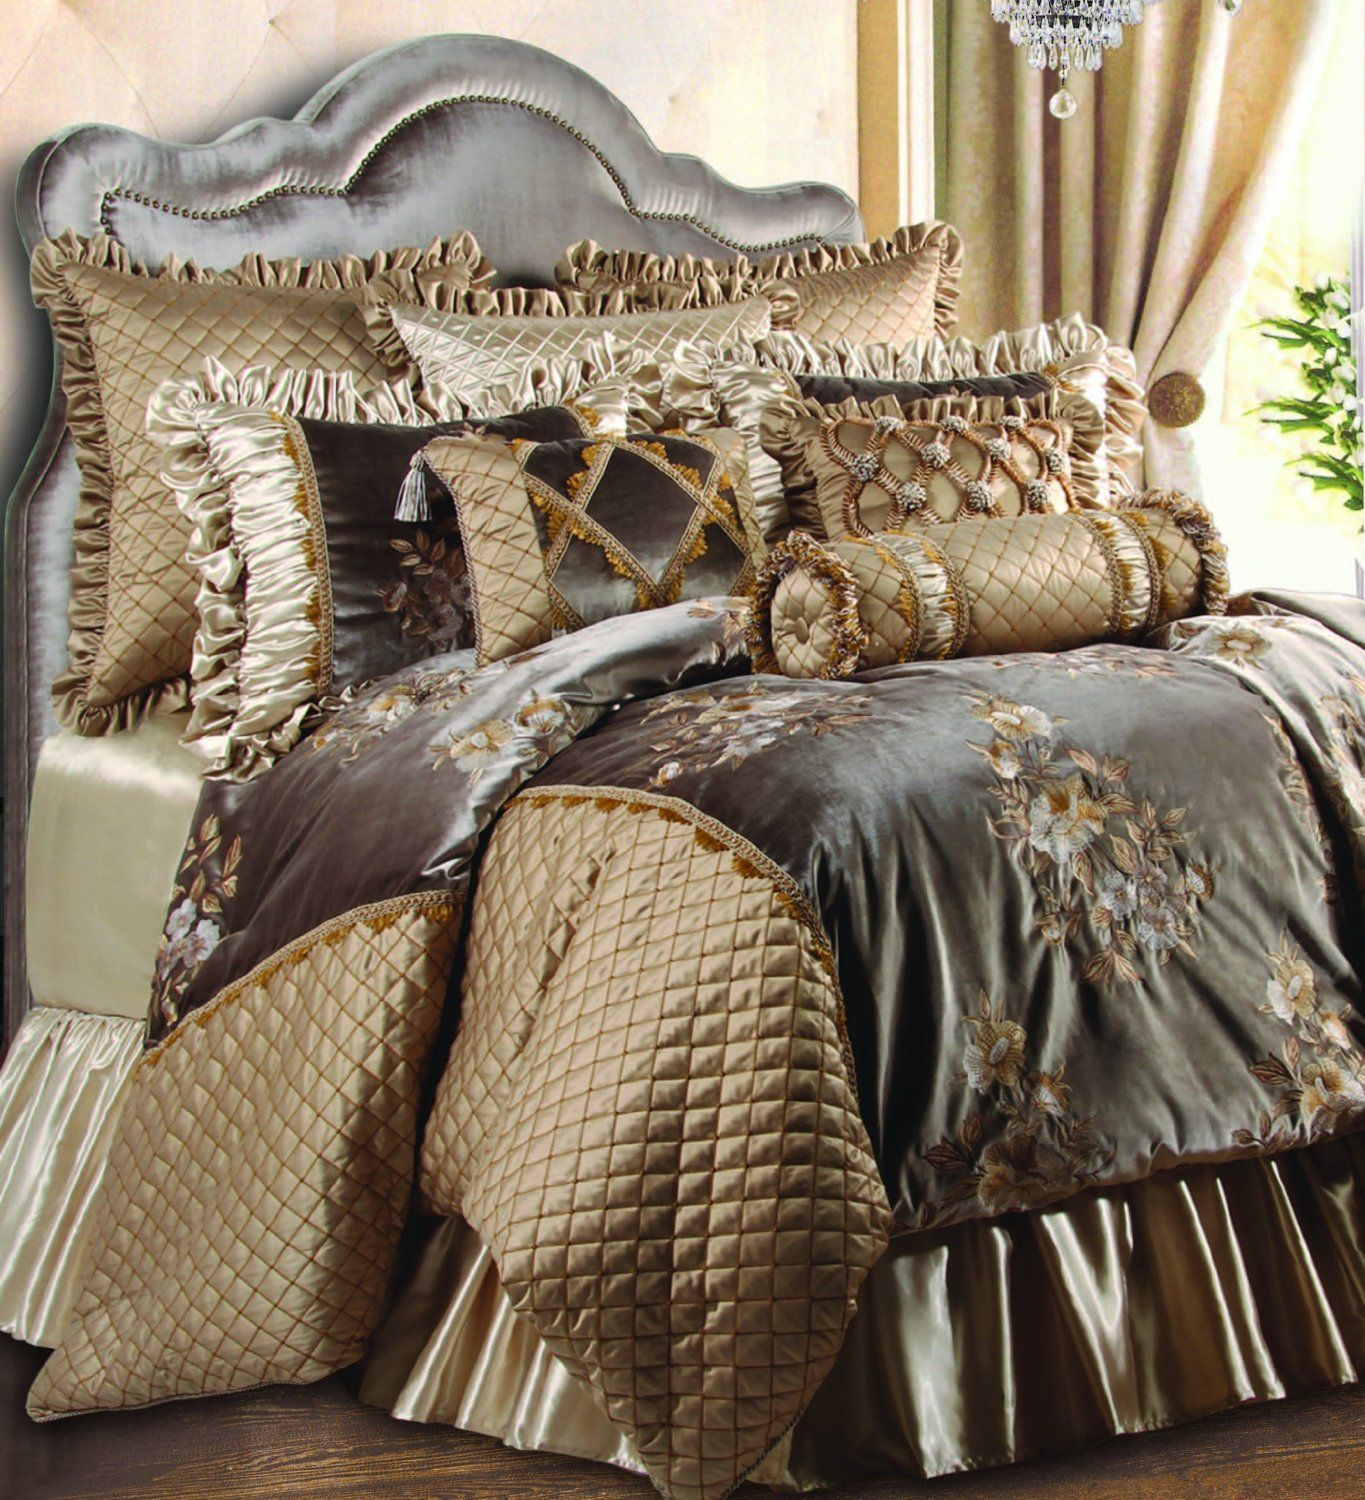 Brown bedding sets queen - Luxury Embroidered Velvet Gold And Brown Hue Bedding Sets In King Size Captivating Luxury King Comforter